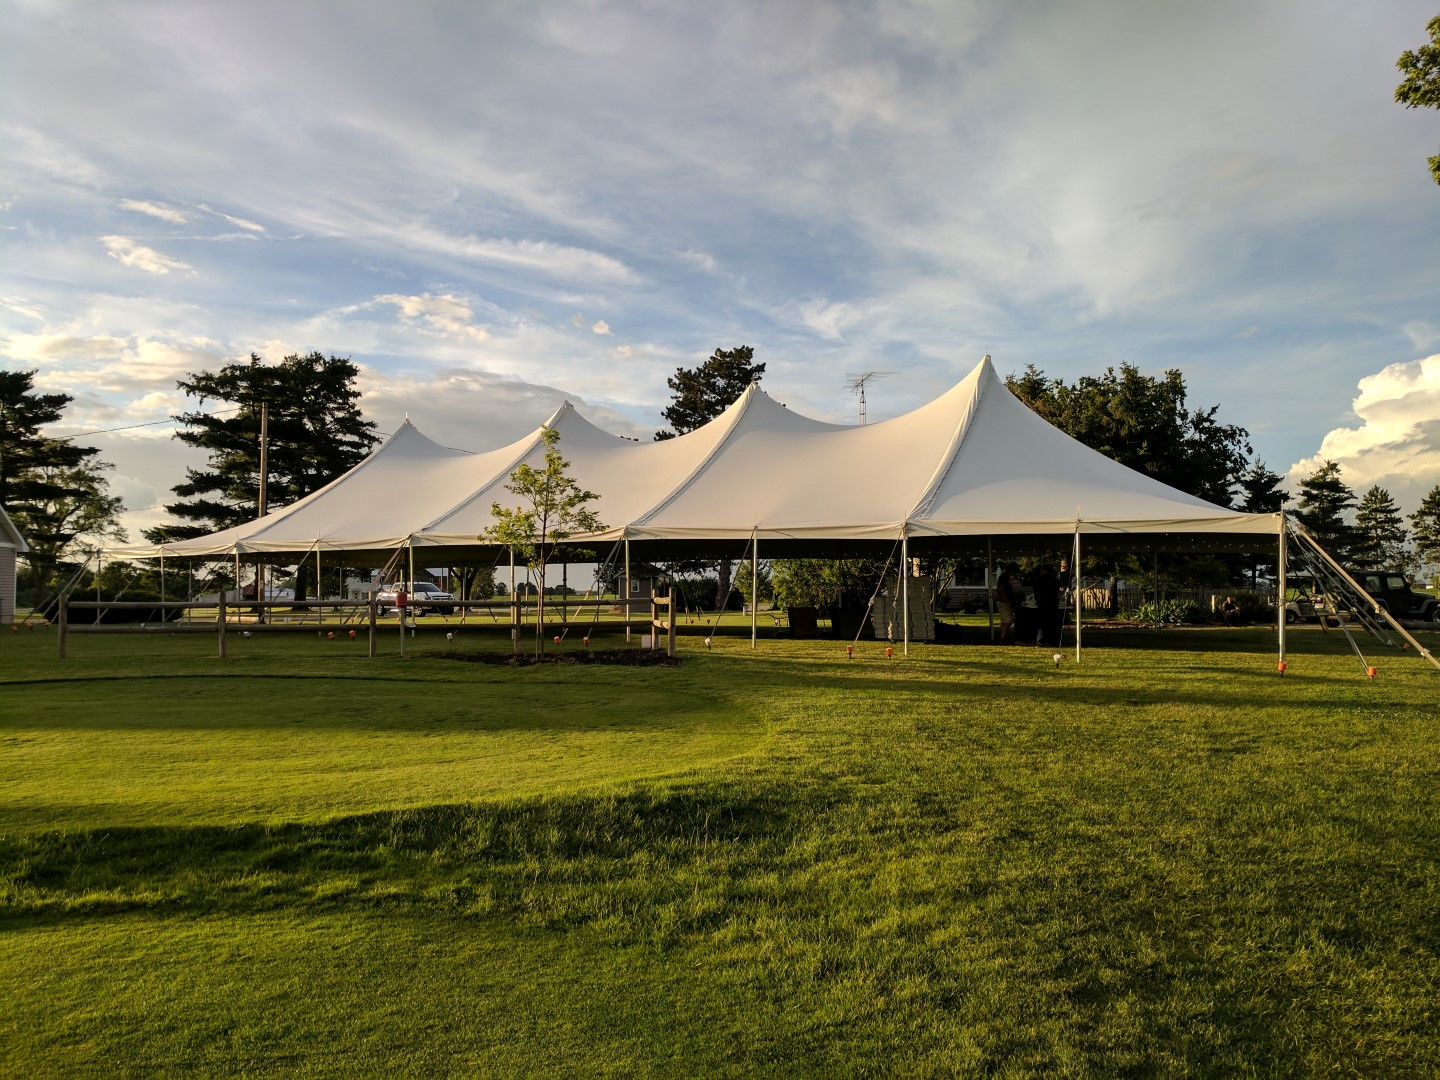 tent price: How much is a 20x20 tent rental?